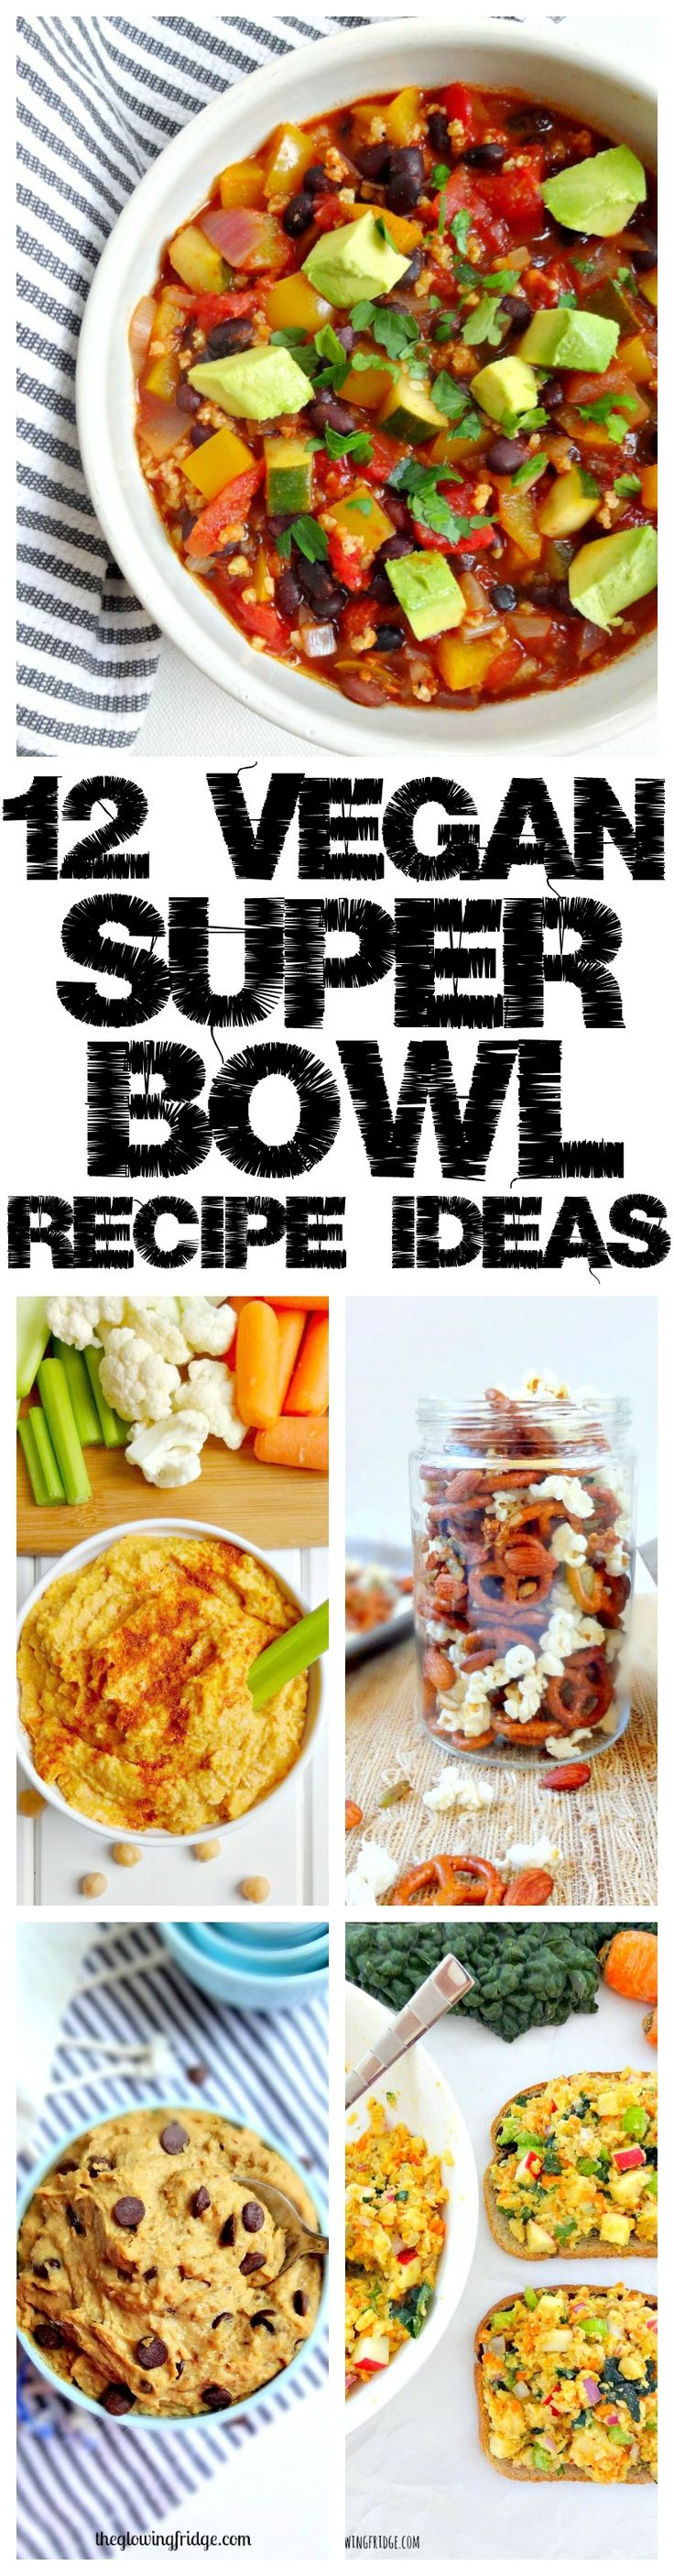 12 VEGAN SUPER BOWL Recipe Ideas that are easy, delicious and crowd-pleasing! Entertain with snacks, chili, salads, sweets and more. From The Glowing Fridge